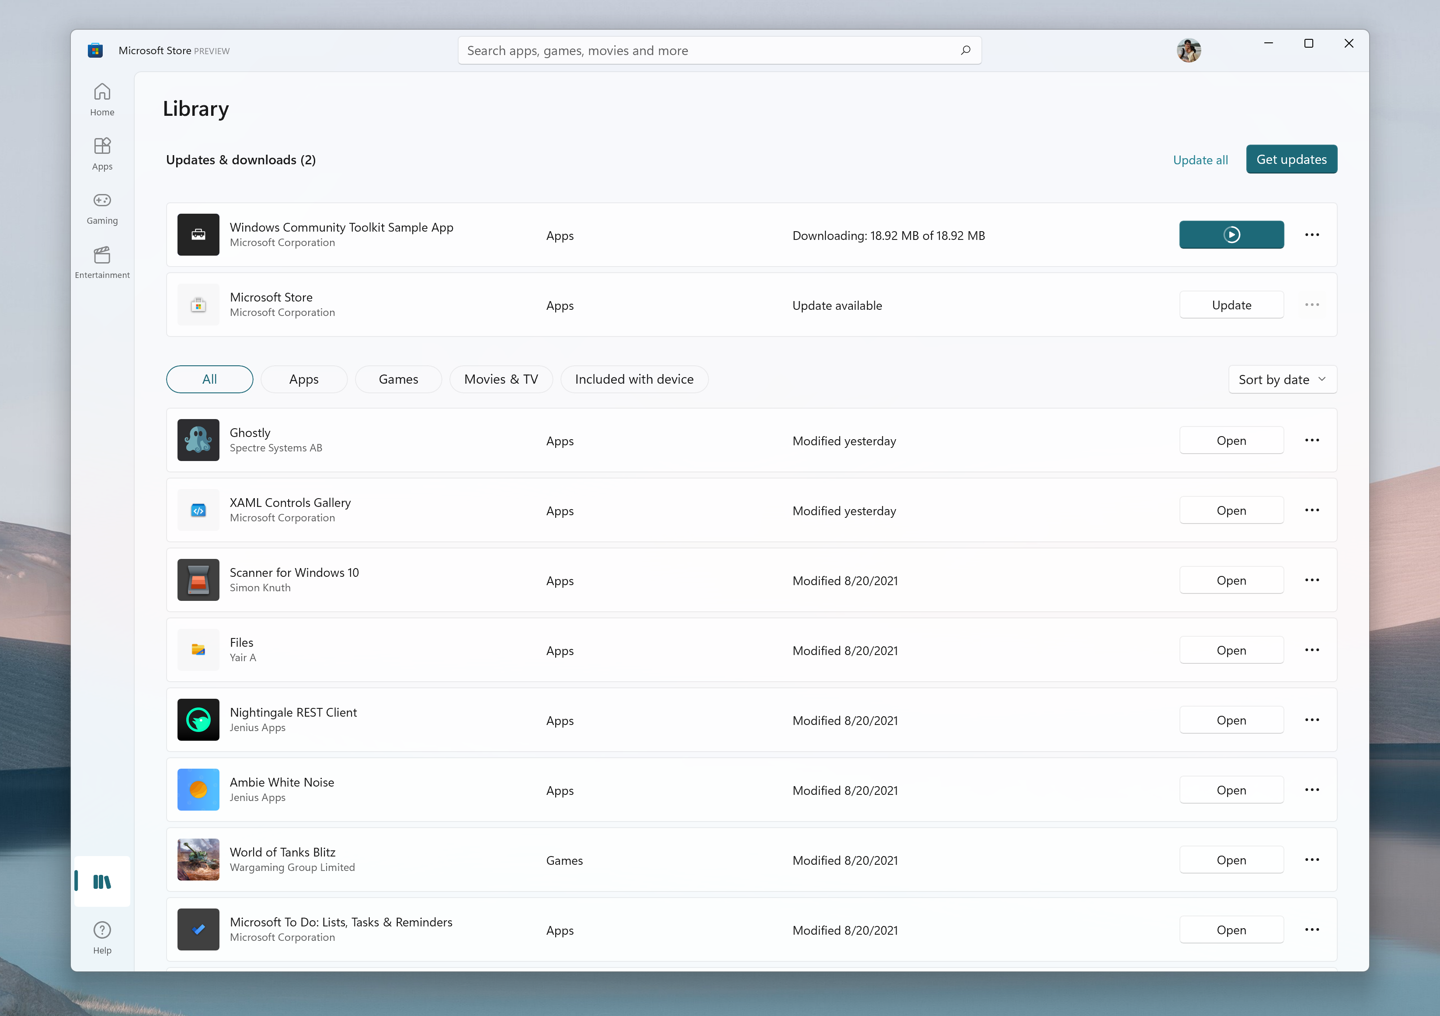 The new visual overhaul of the Library page in the Microsoft Store.